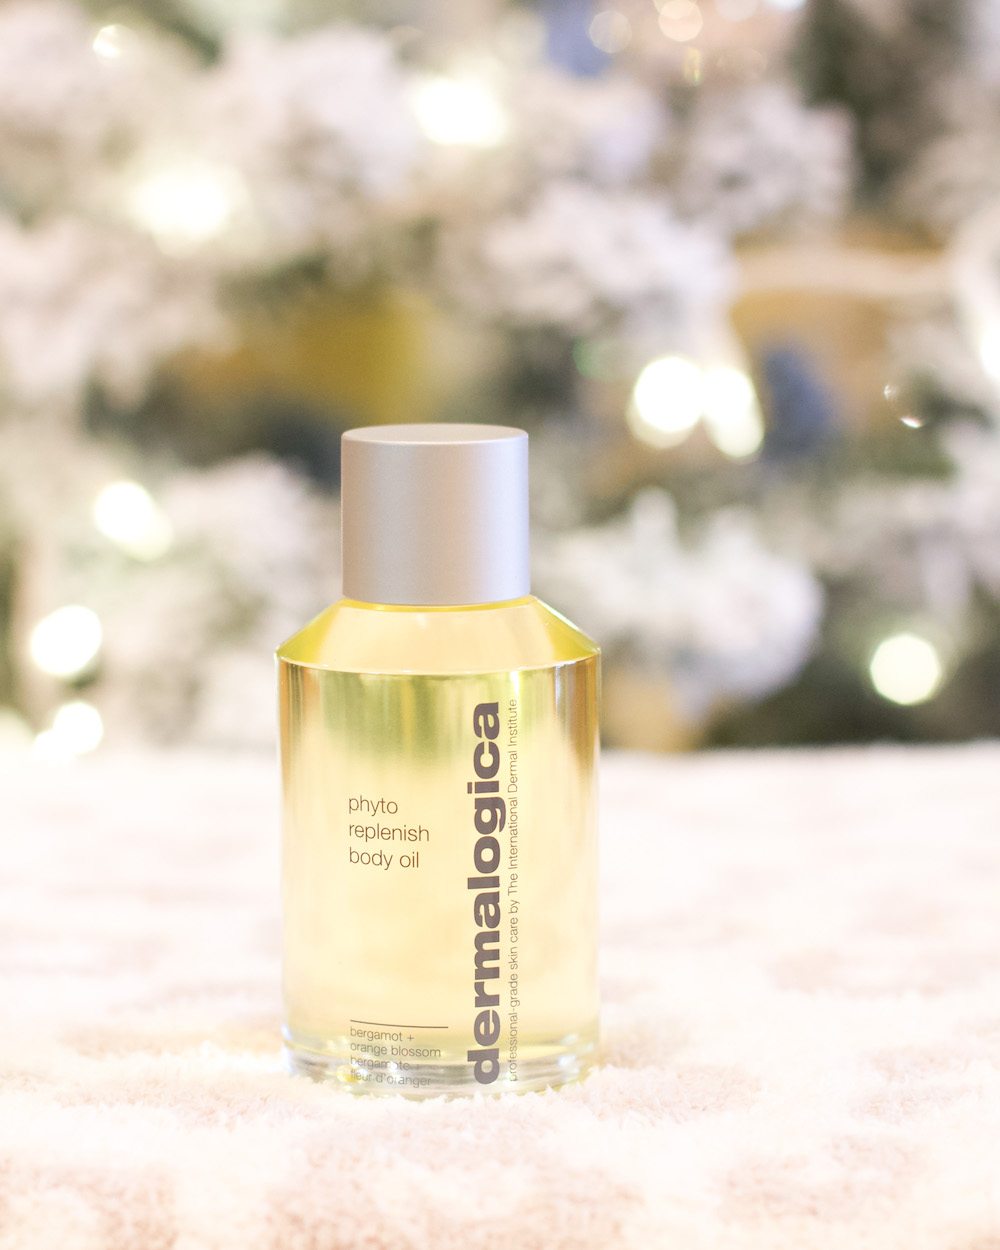 dermalogica phyto replenish body oil review